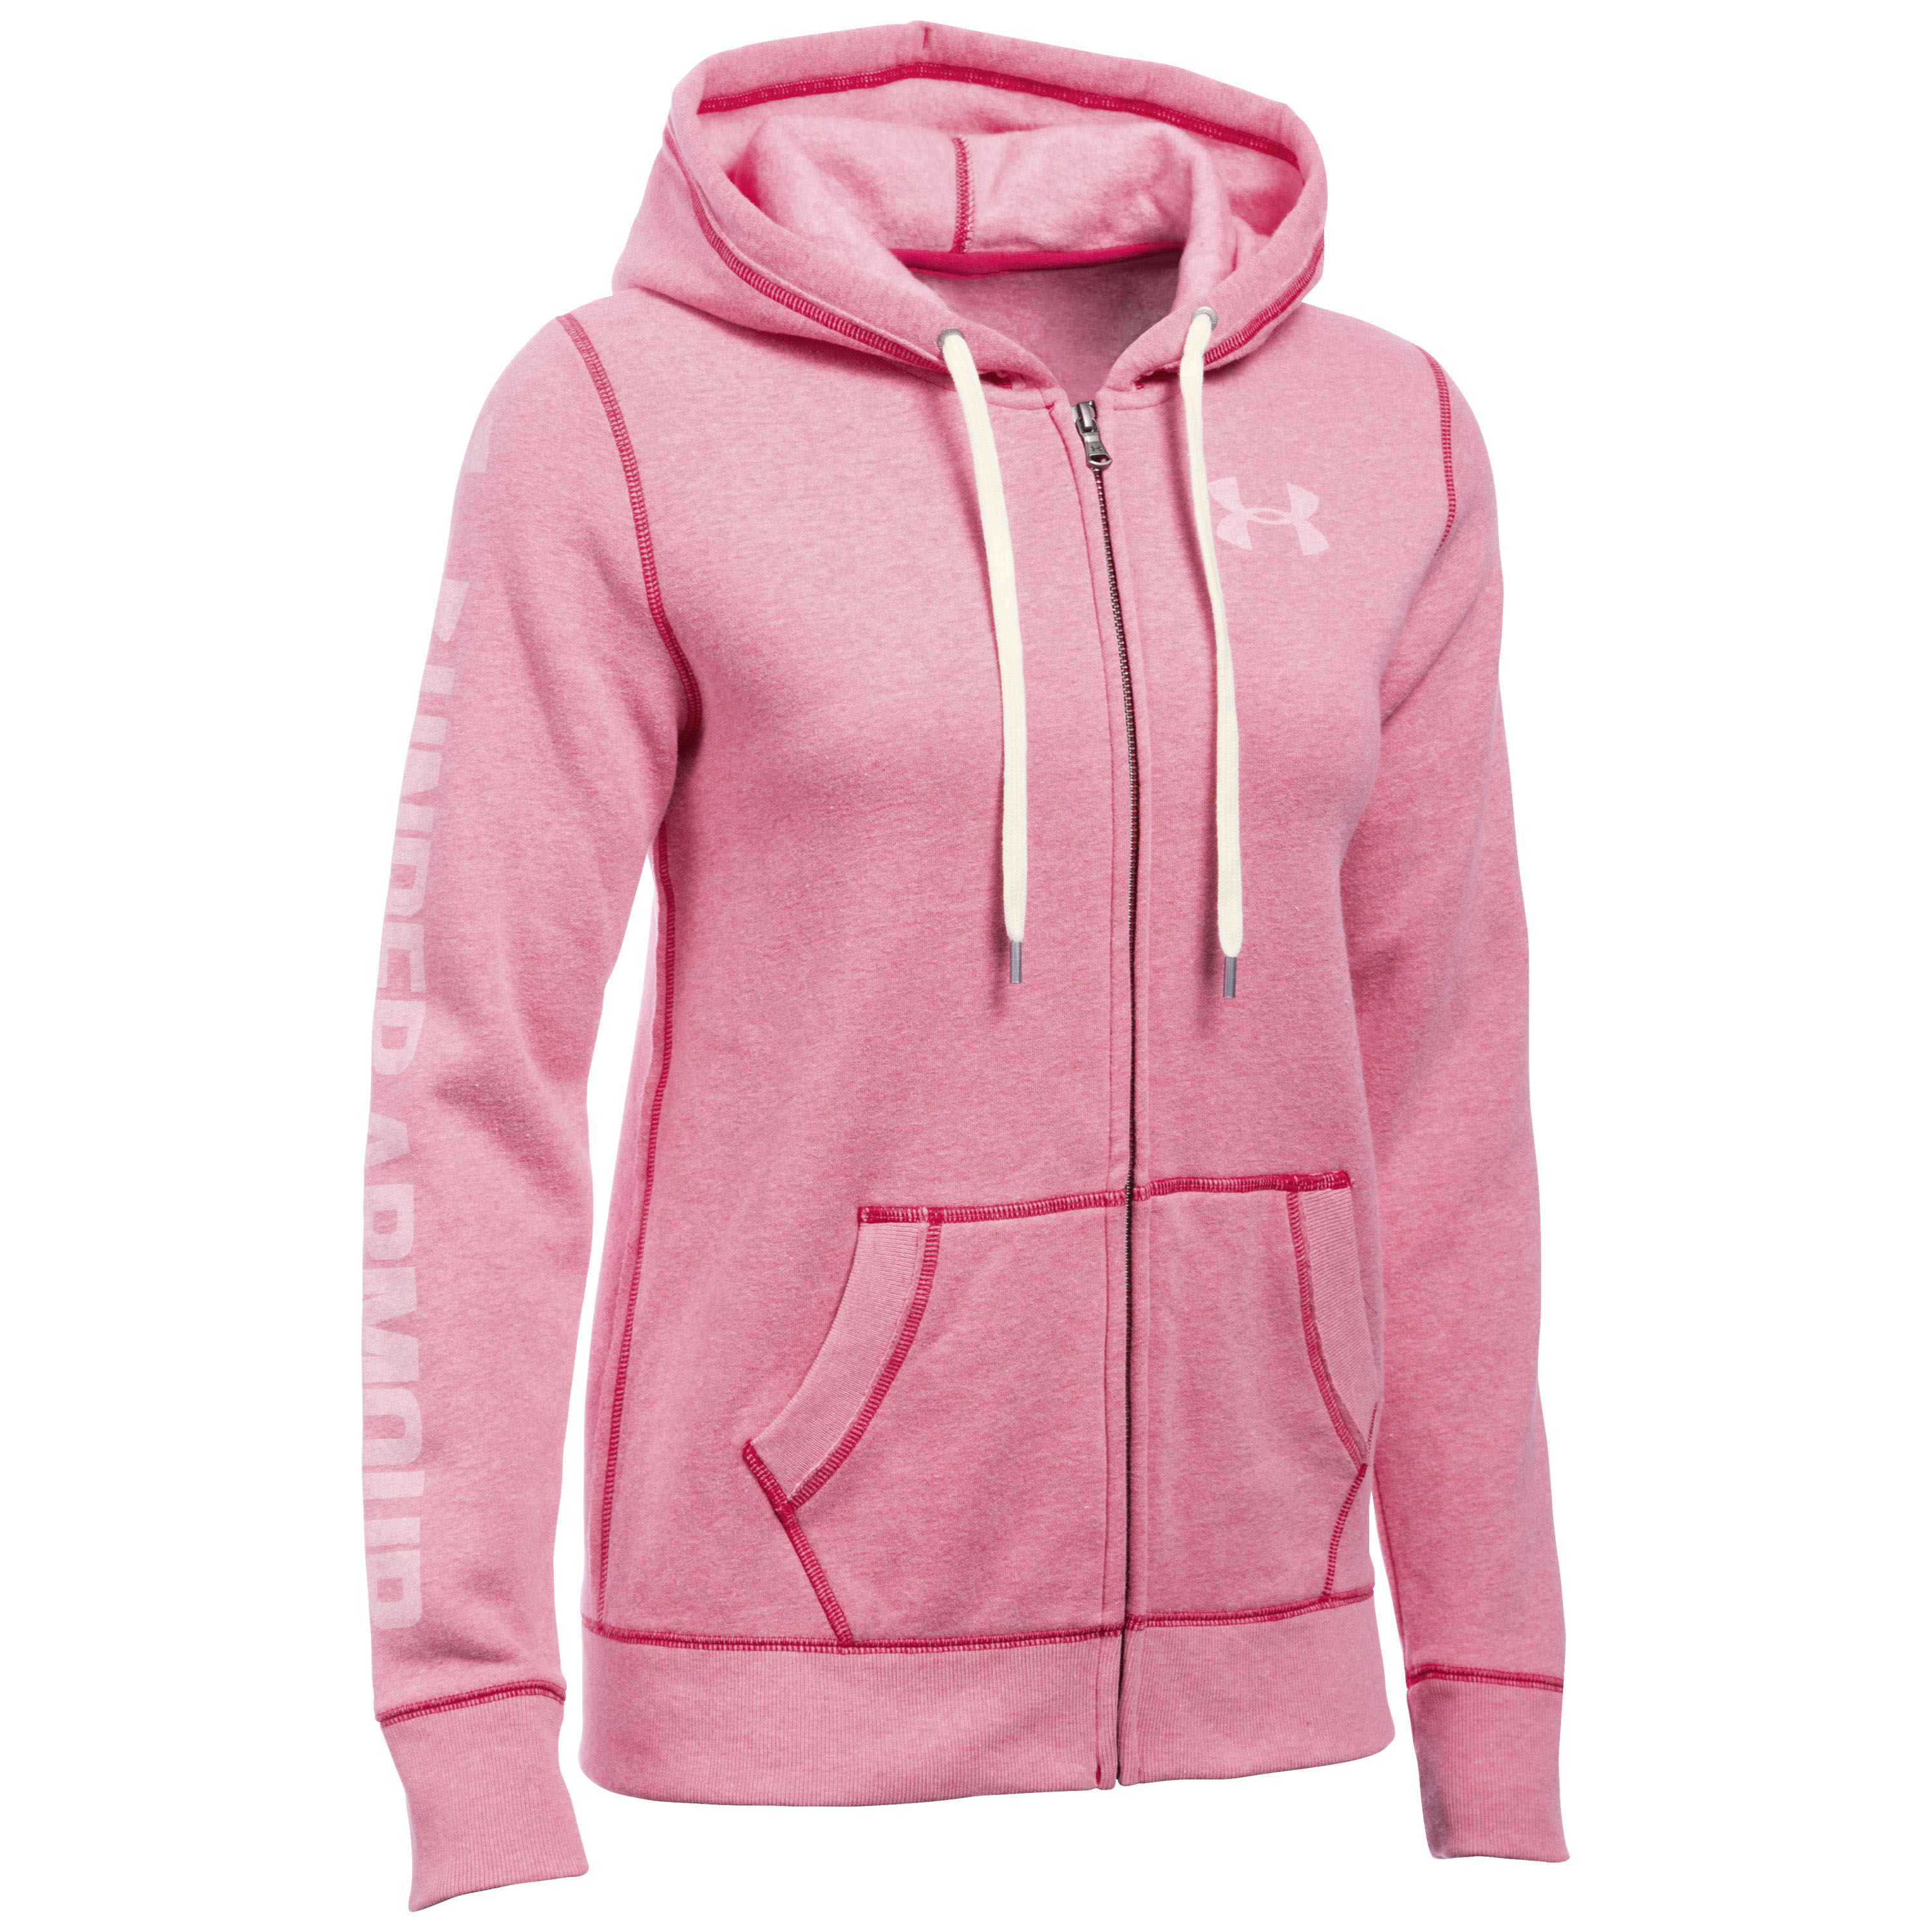 Under Armour Women Jacke Favorite Fleece pink